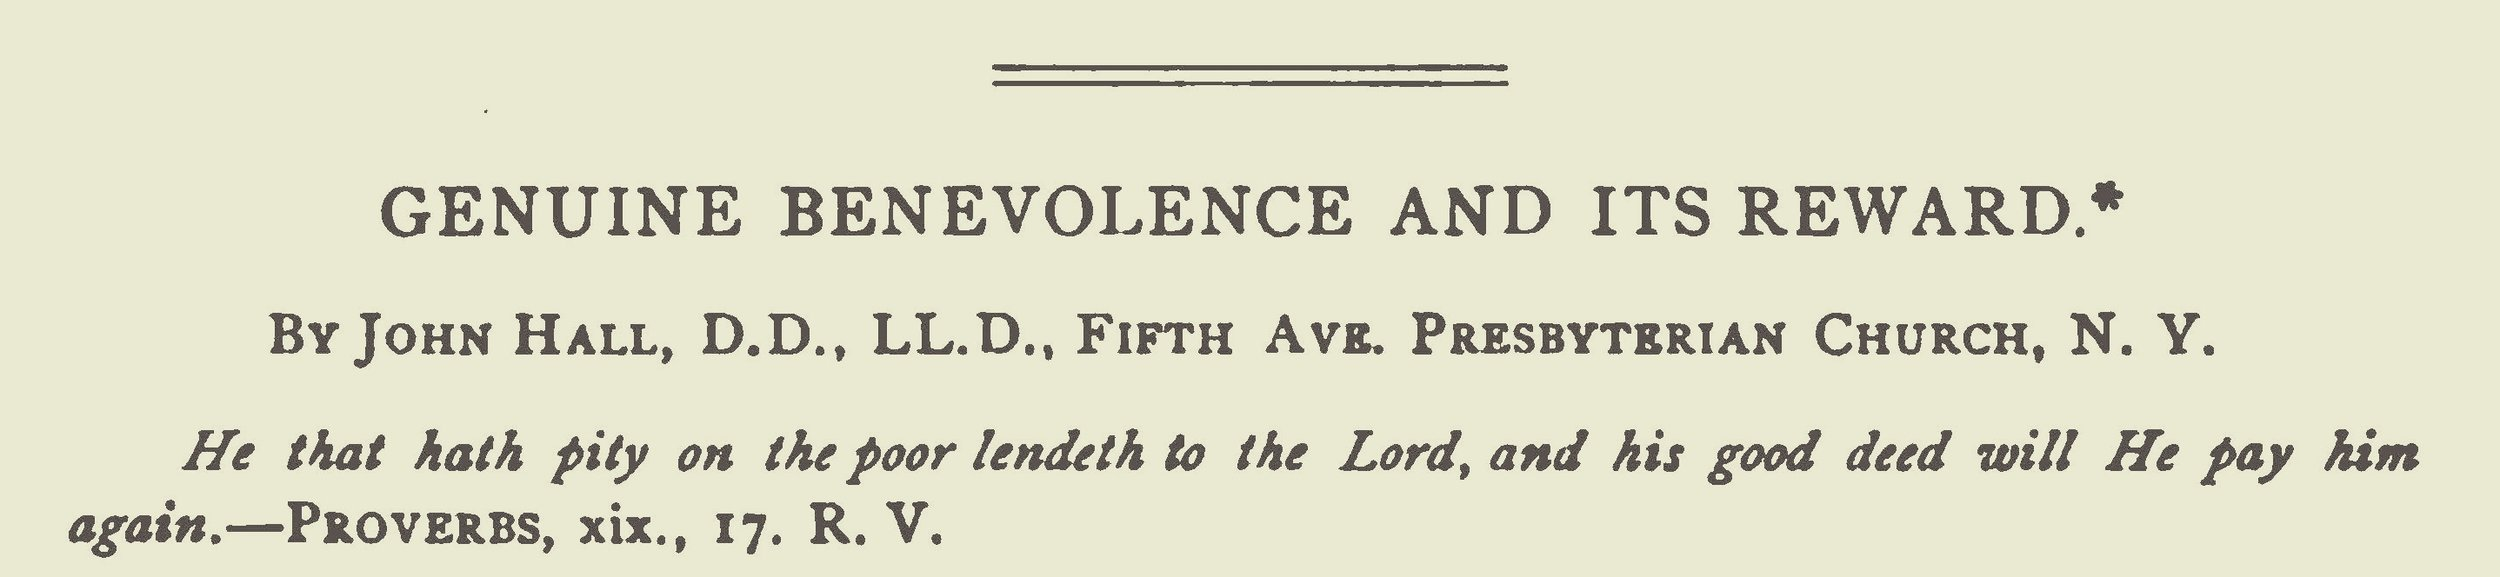 Hall, John, Genuine Benevolence and Its Reward Title Page.jpg